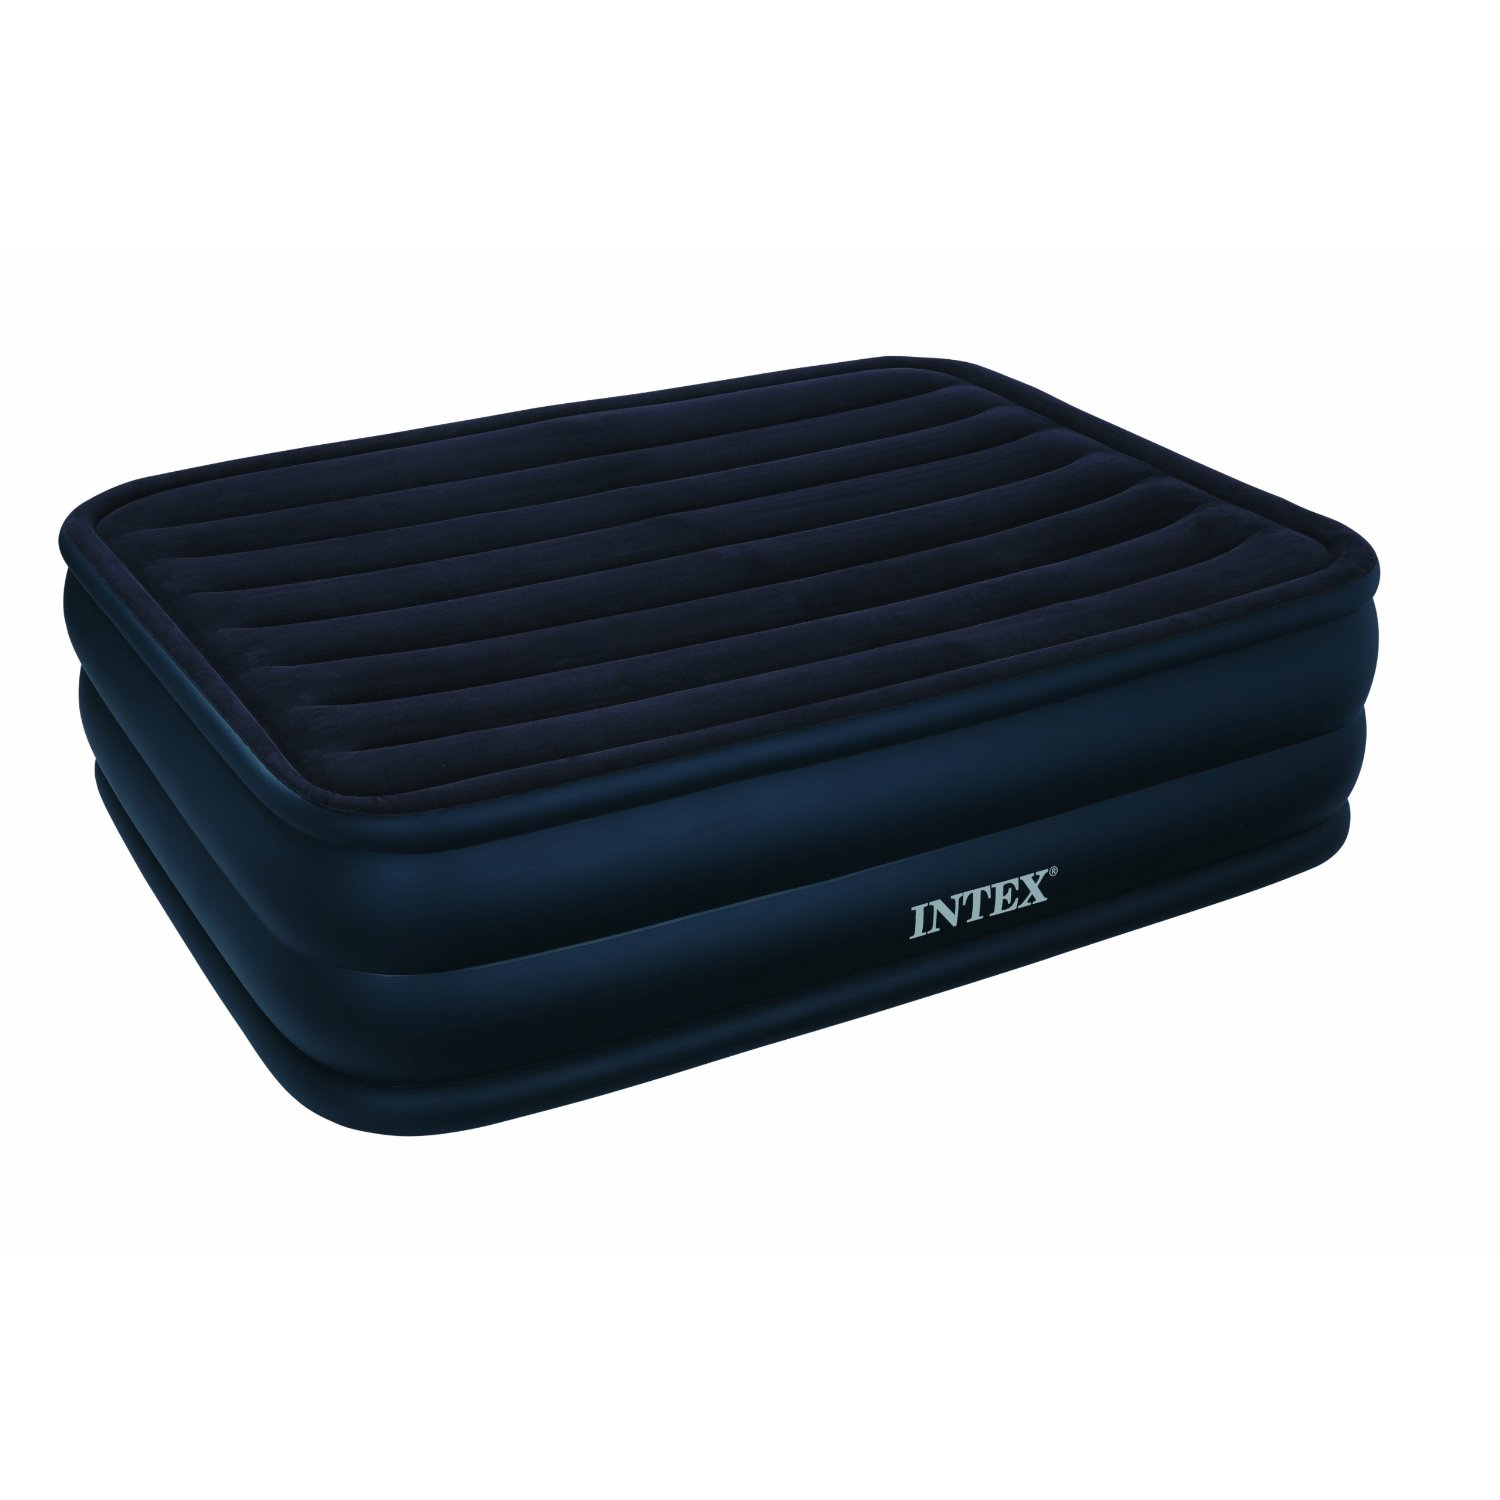 Intex Raised Downy Queen Airbed With Built In Electric